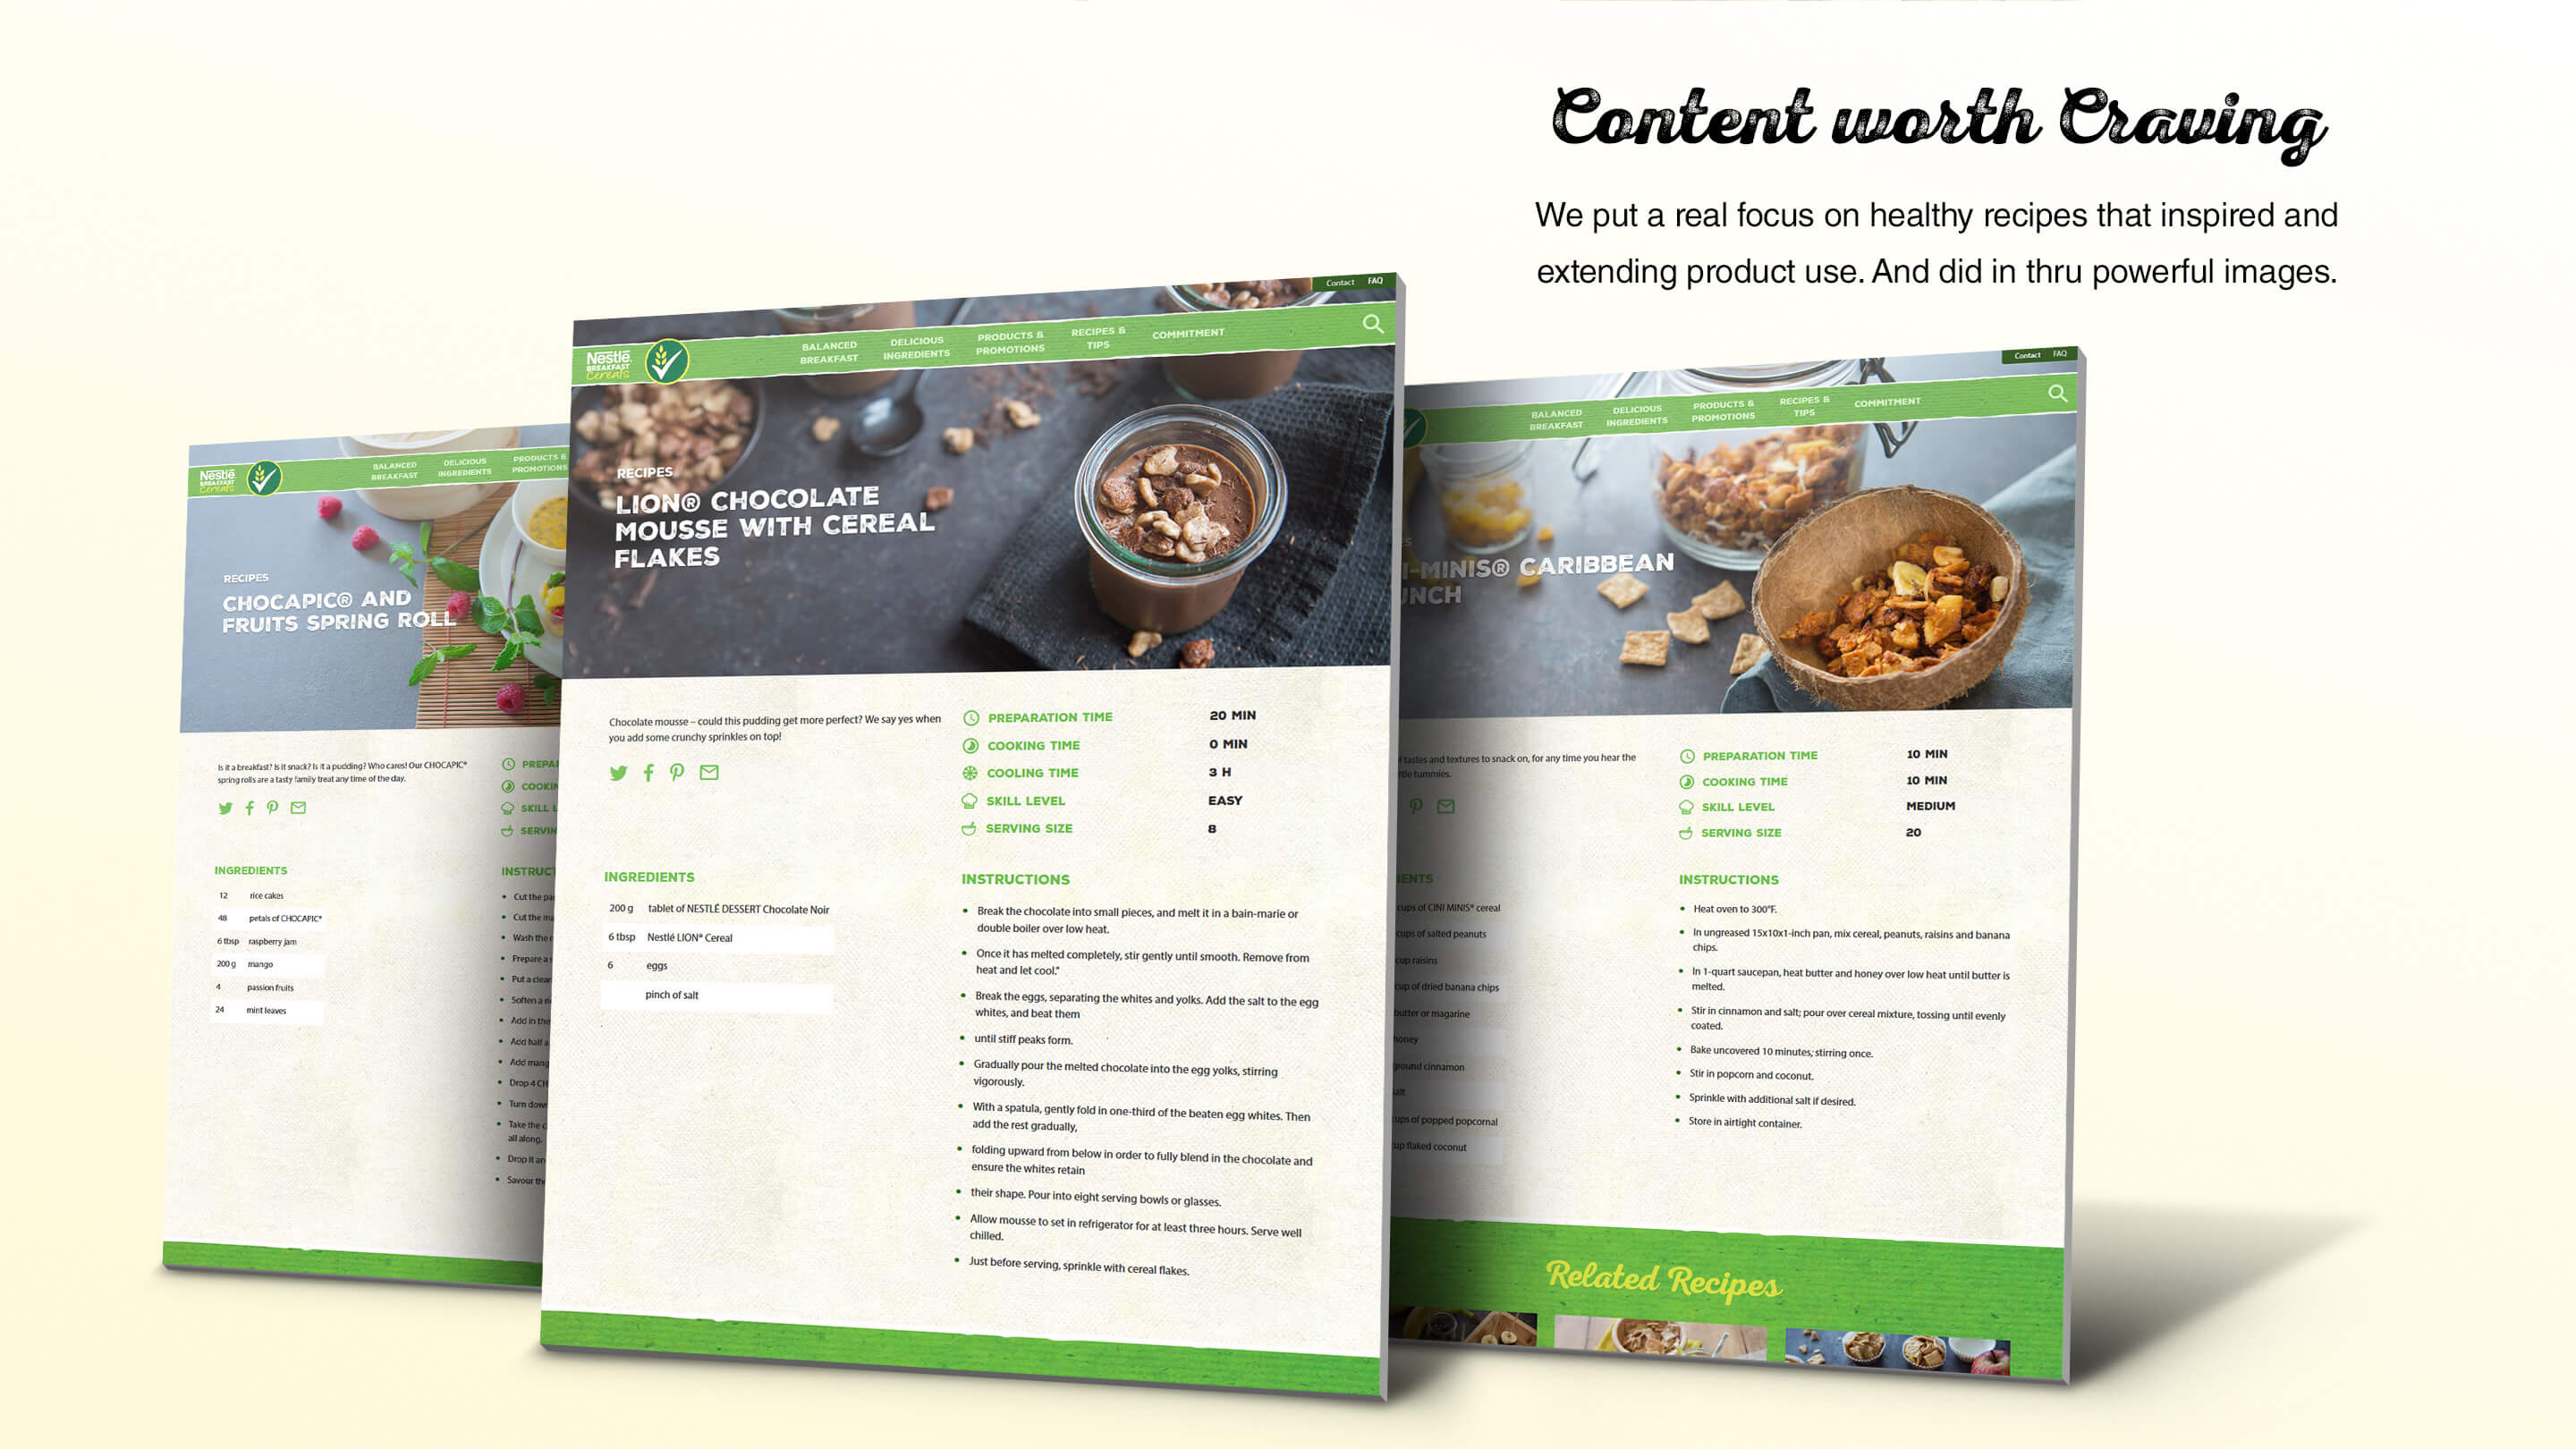 Nestlé: Global Cereals Website is a global web platform for more than 60 countries that lets people find health, nutrition, recipes and information about their favourite breakfast cereals. I was responsible for the design of this site and had a team of four ux service designers working with me.